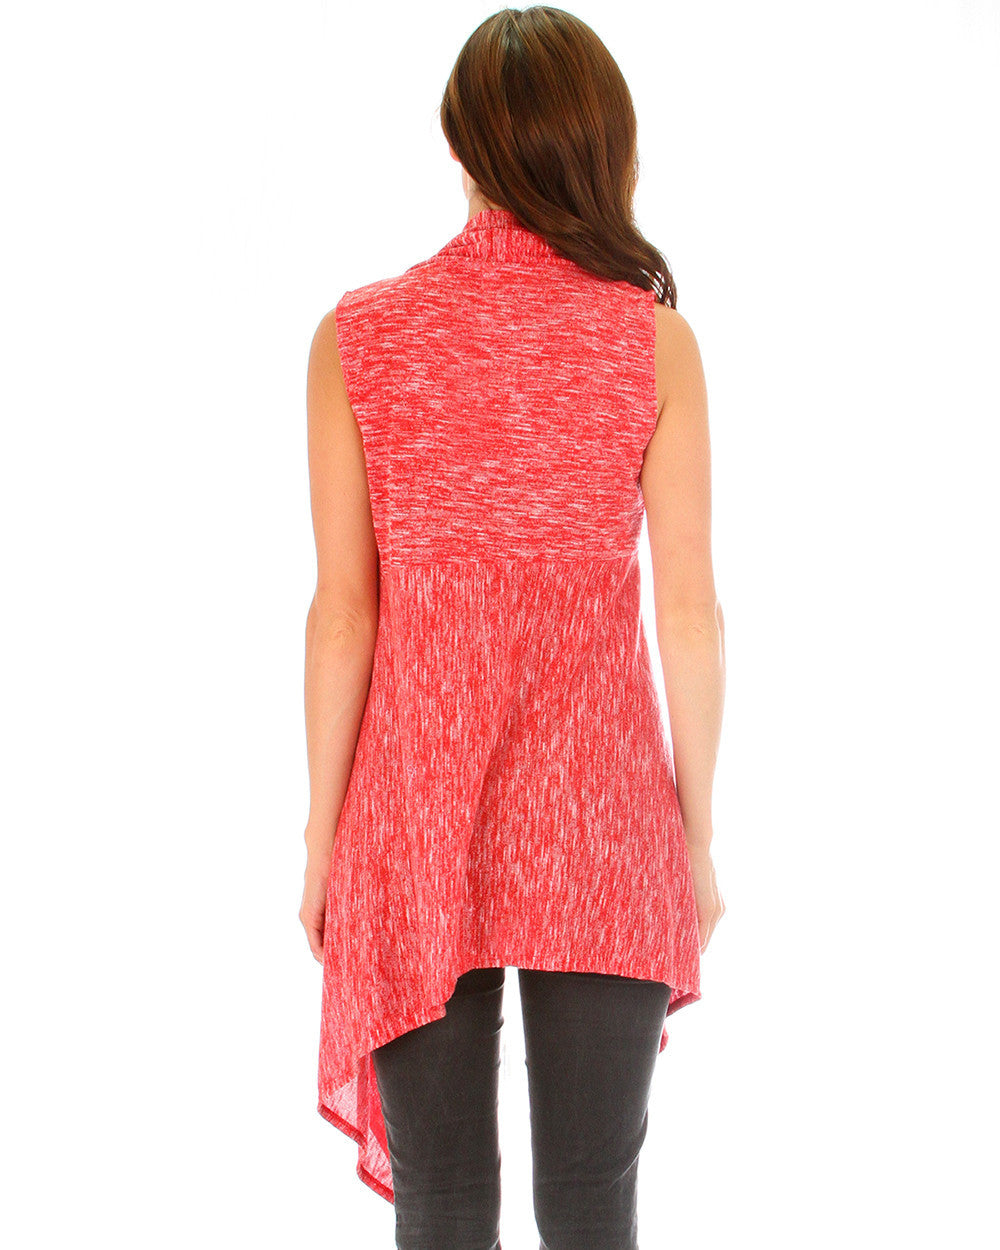 Body Slimming 2-Tone Cardigan In Red